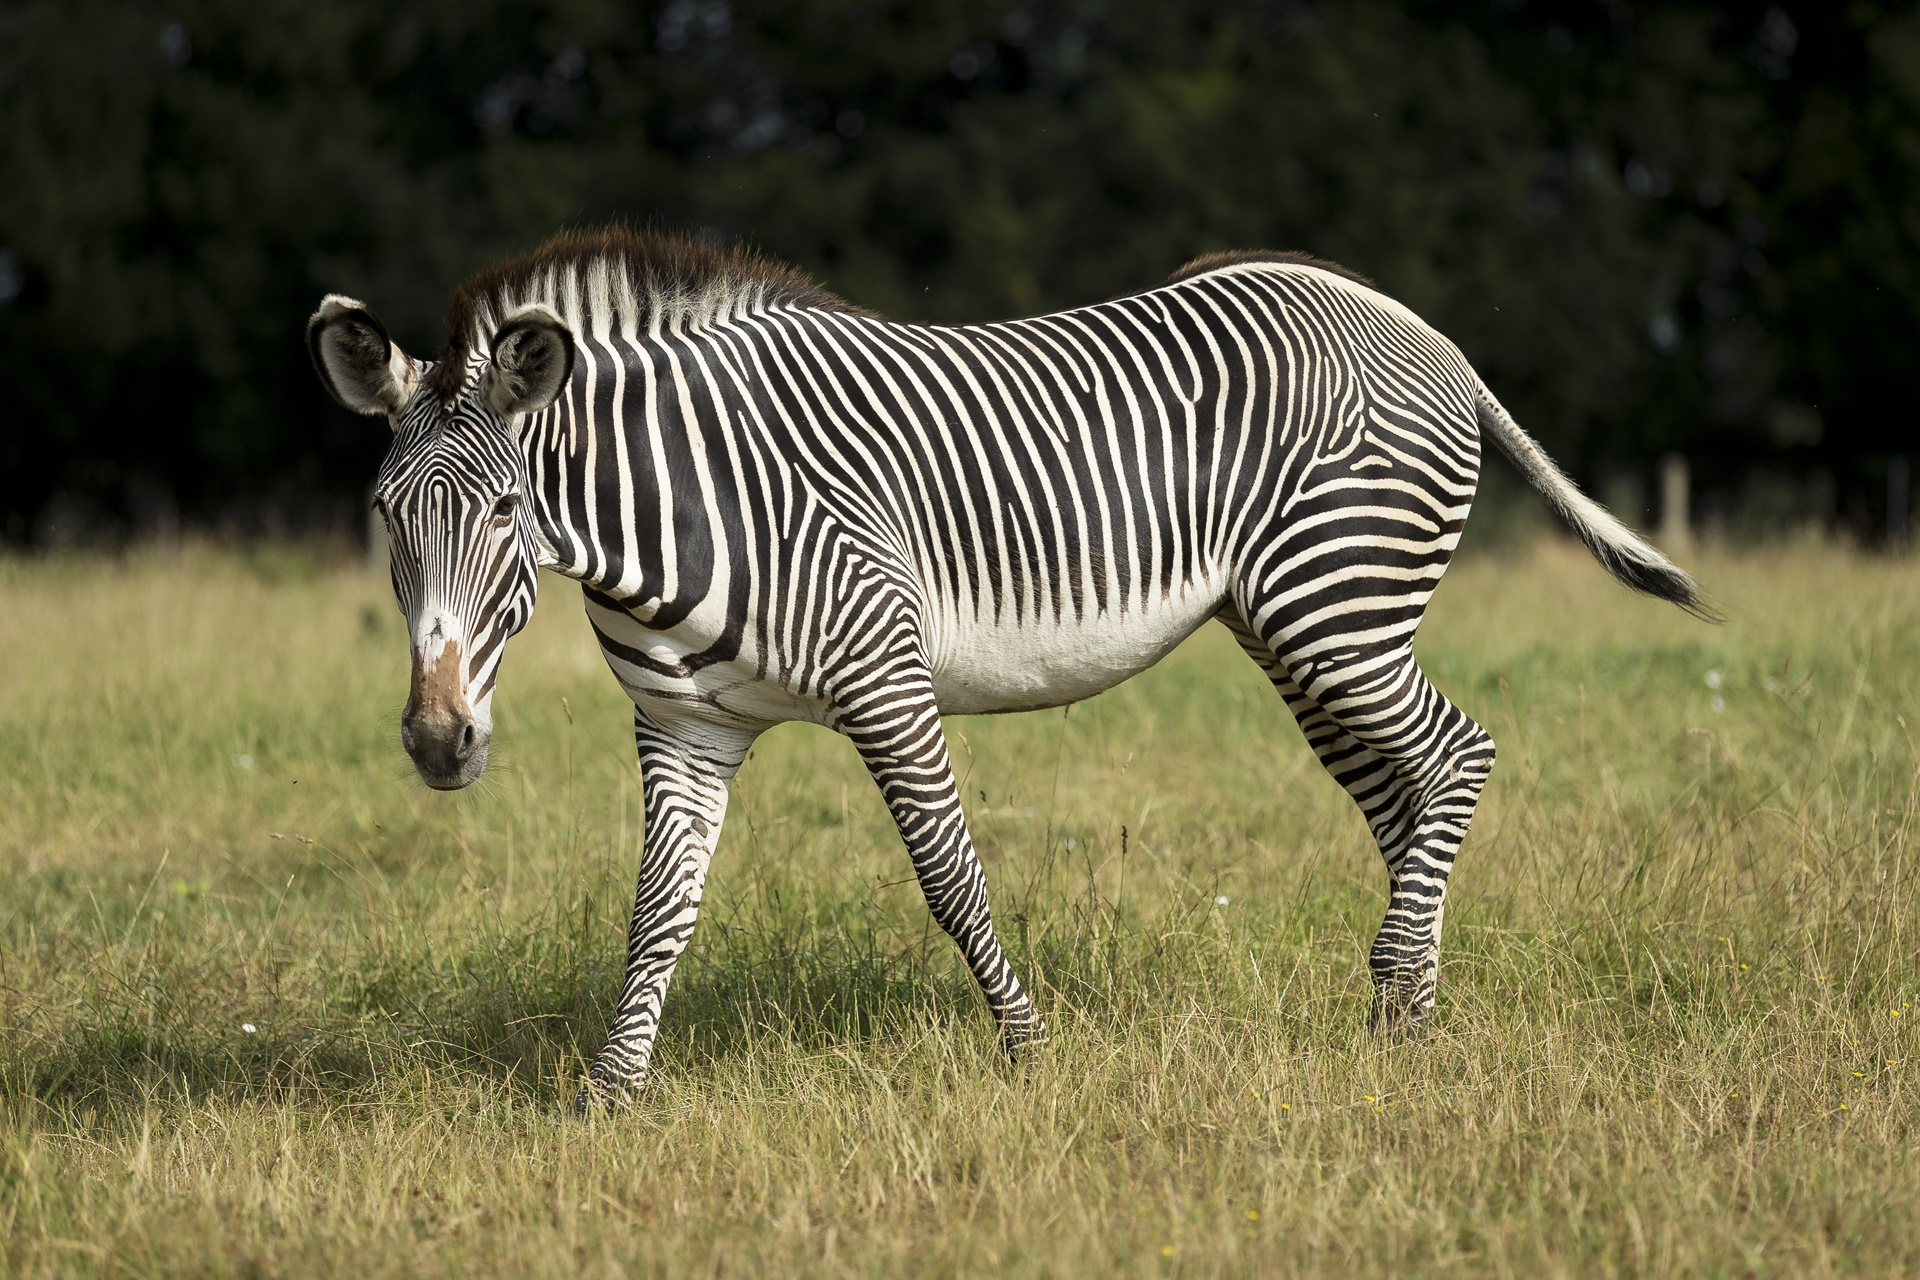 A healthy Grevy's zebra at Marwell Zoo